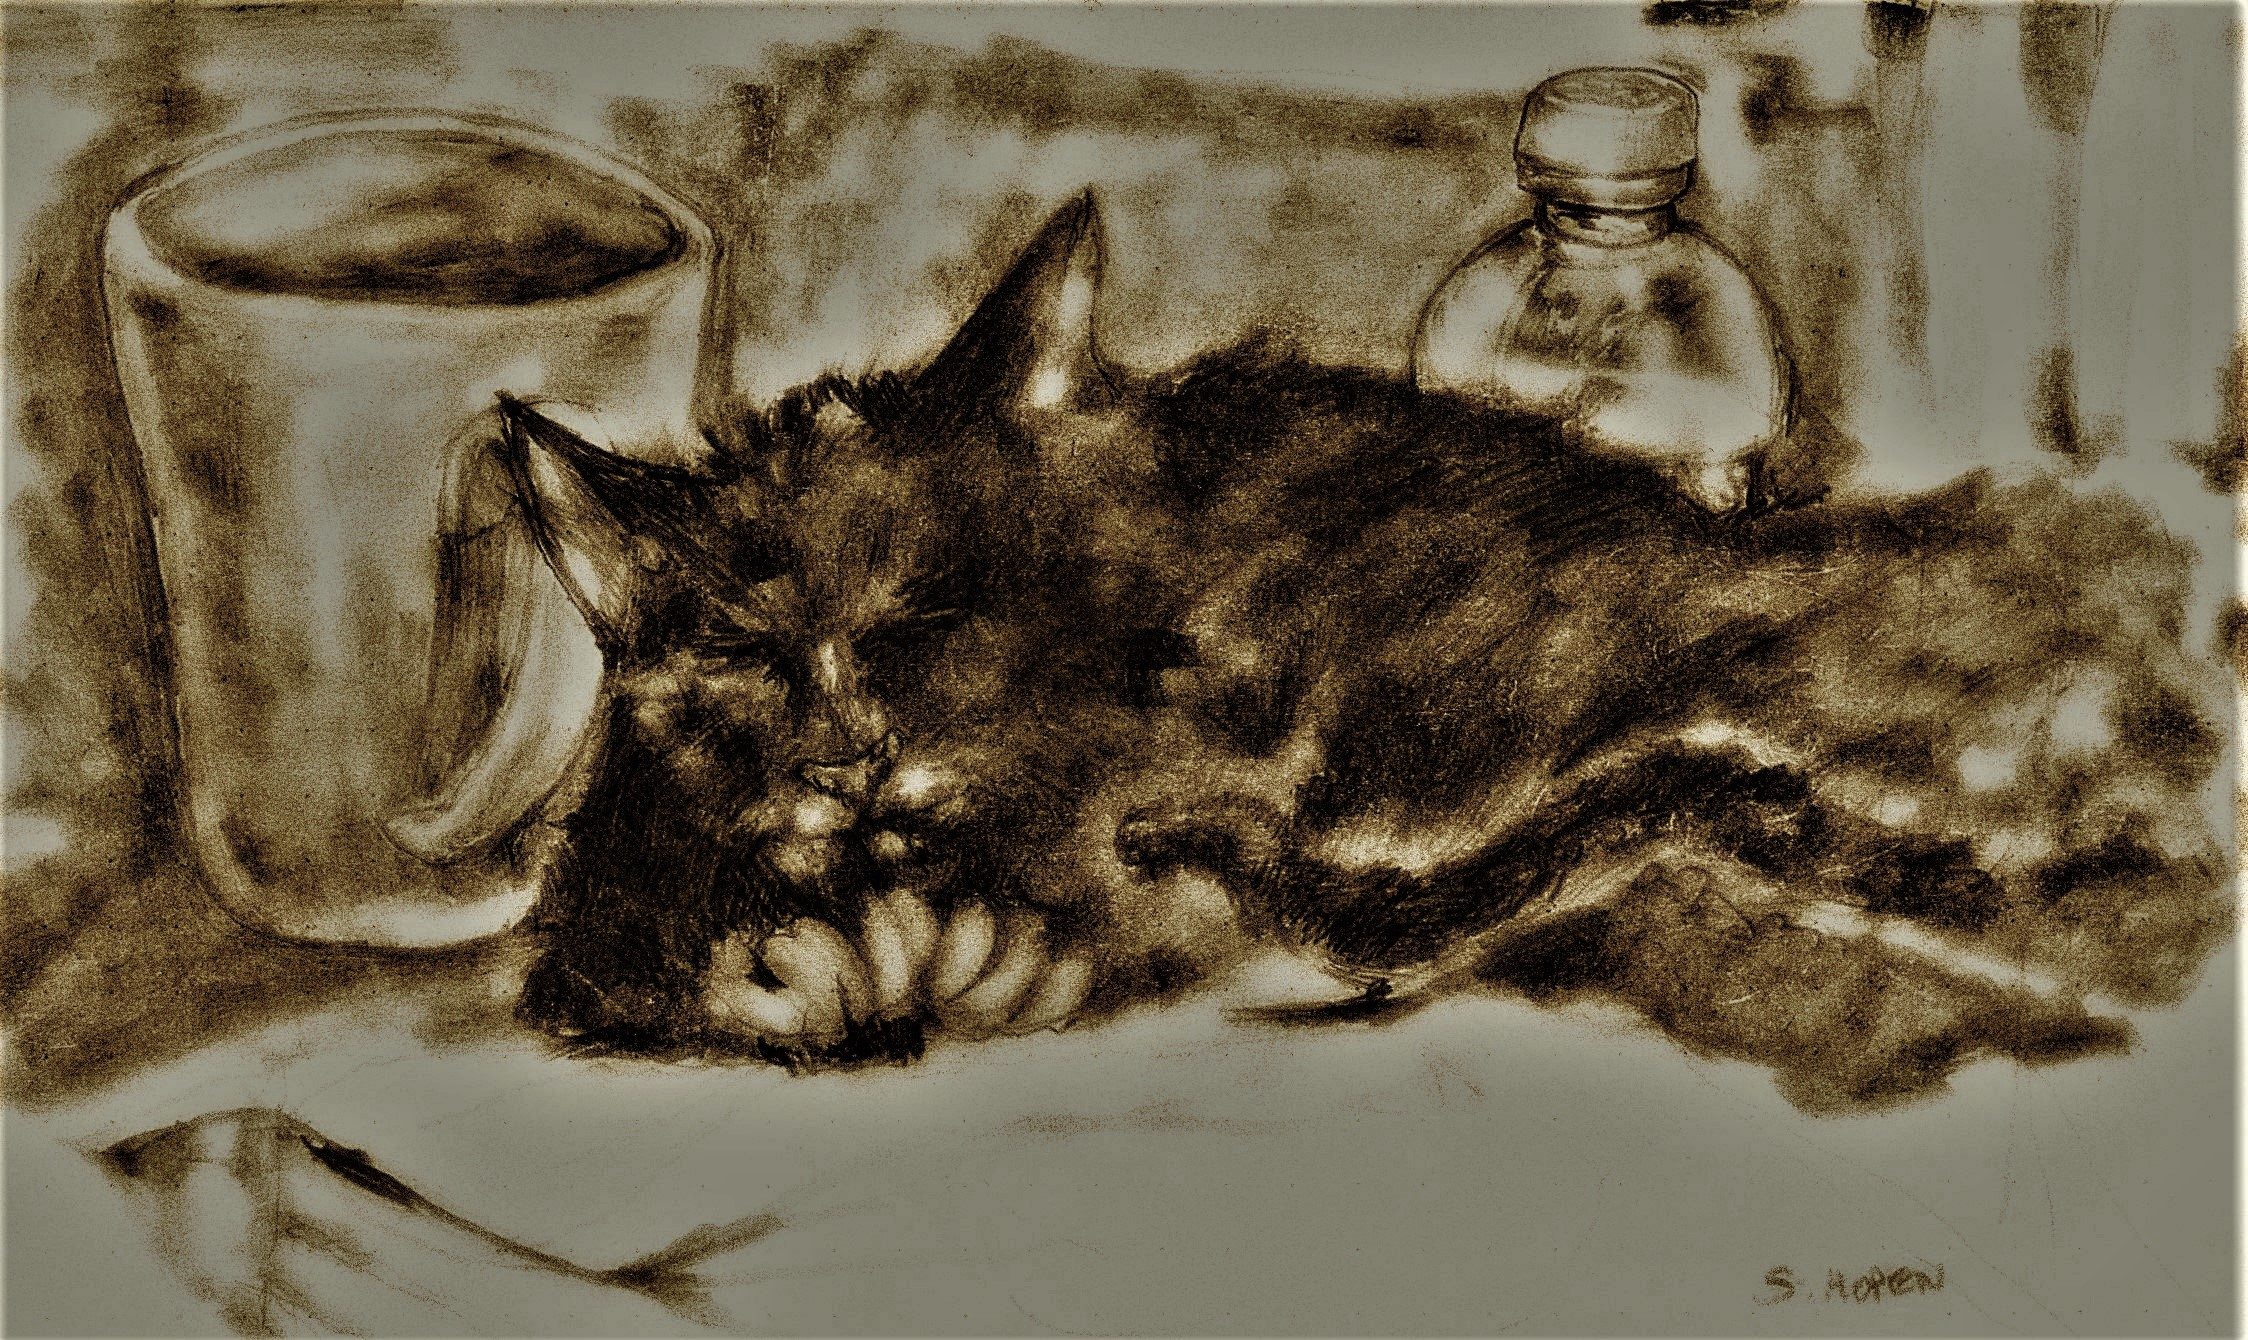 Sleeping-Black-Cat